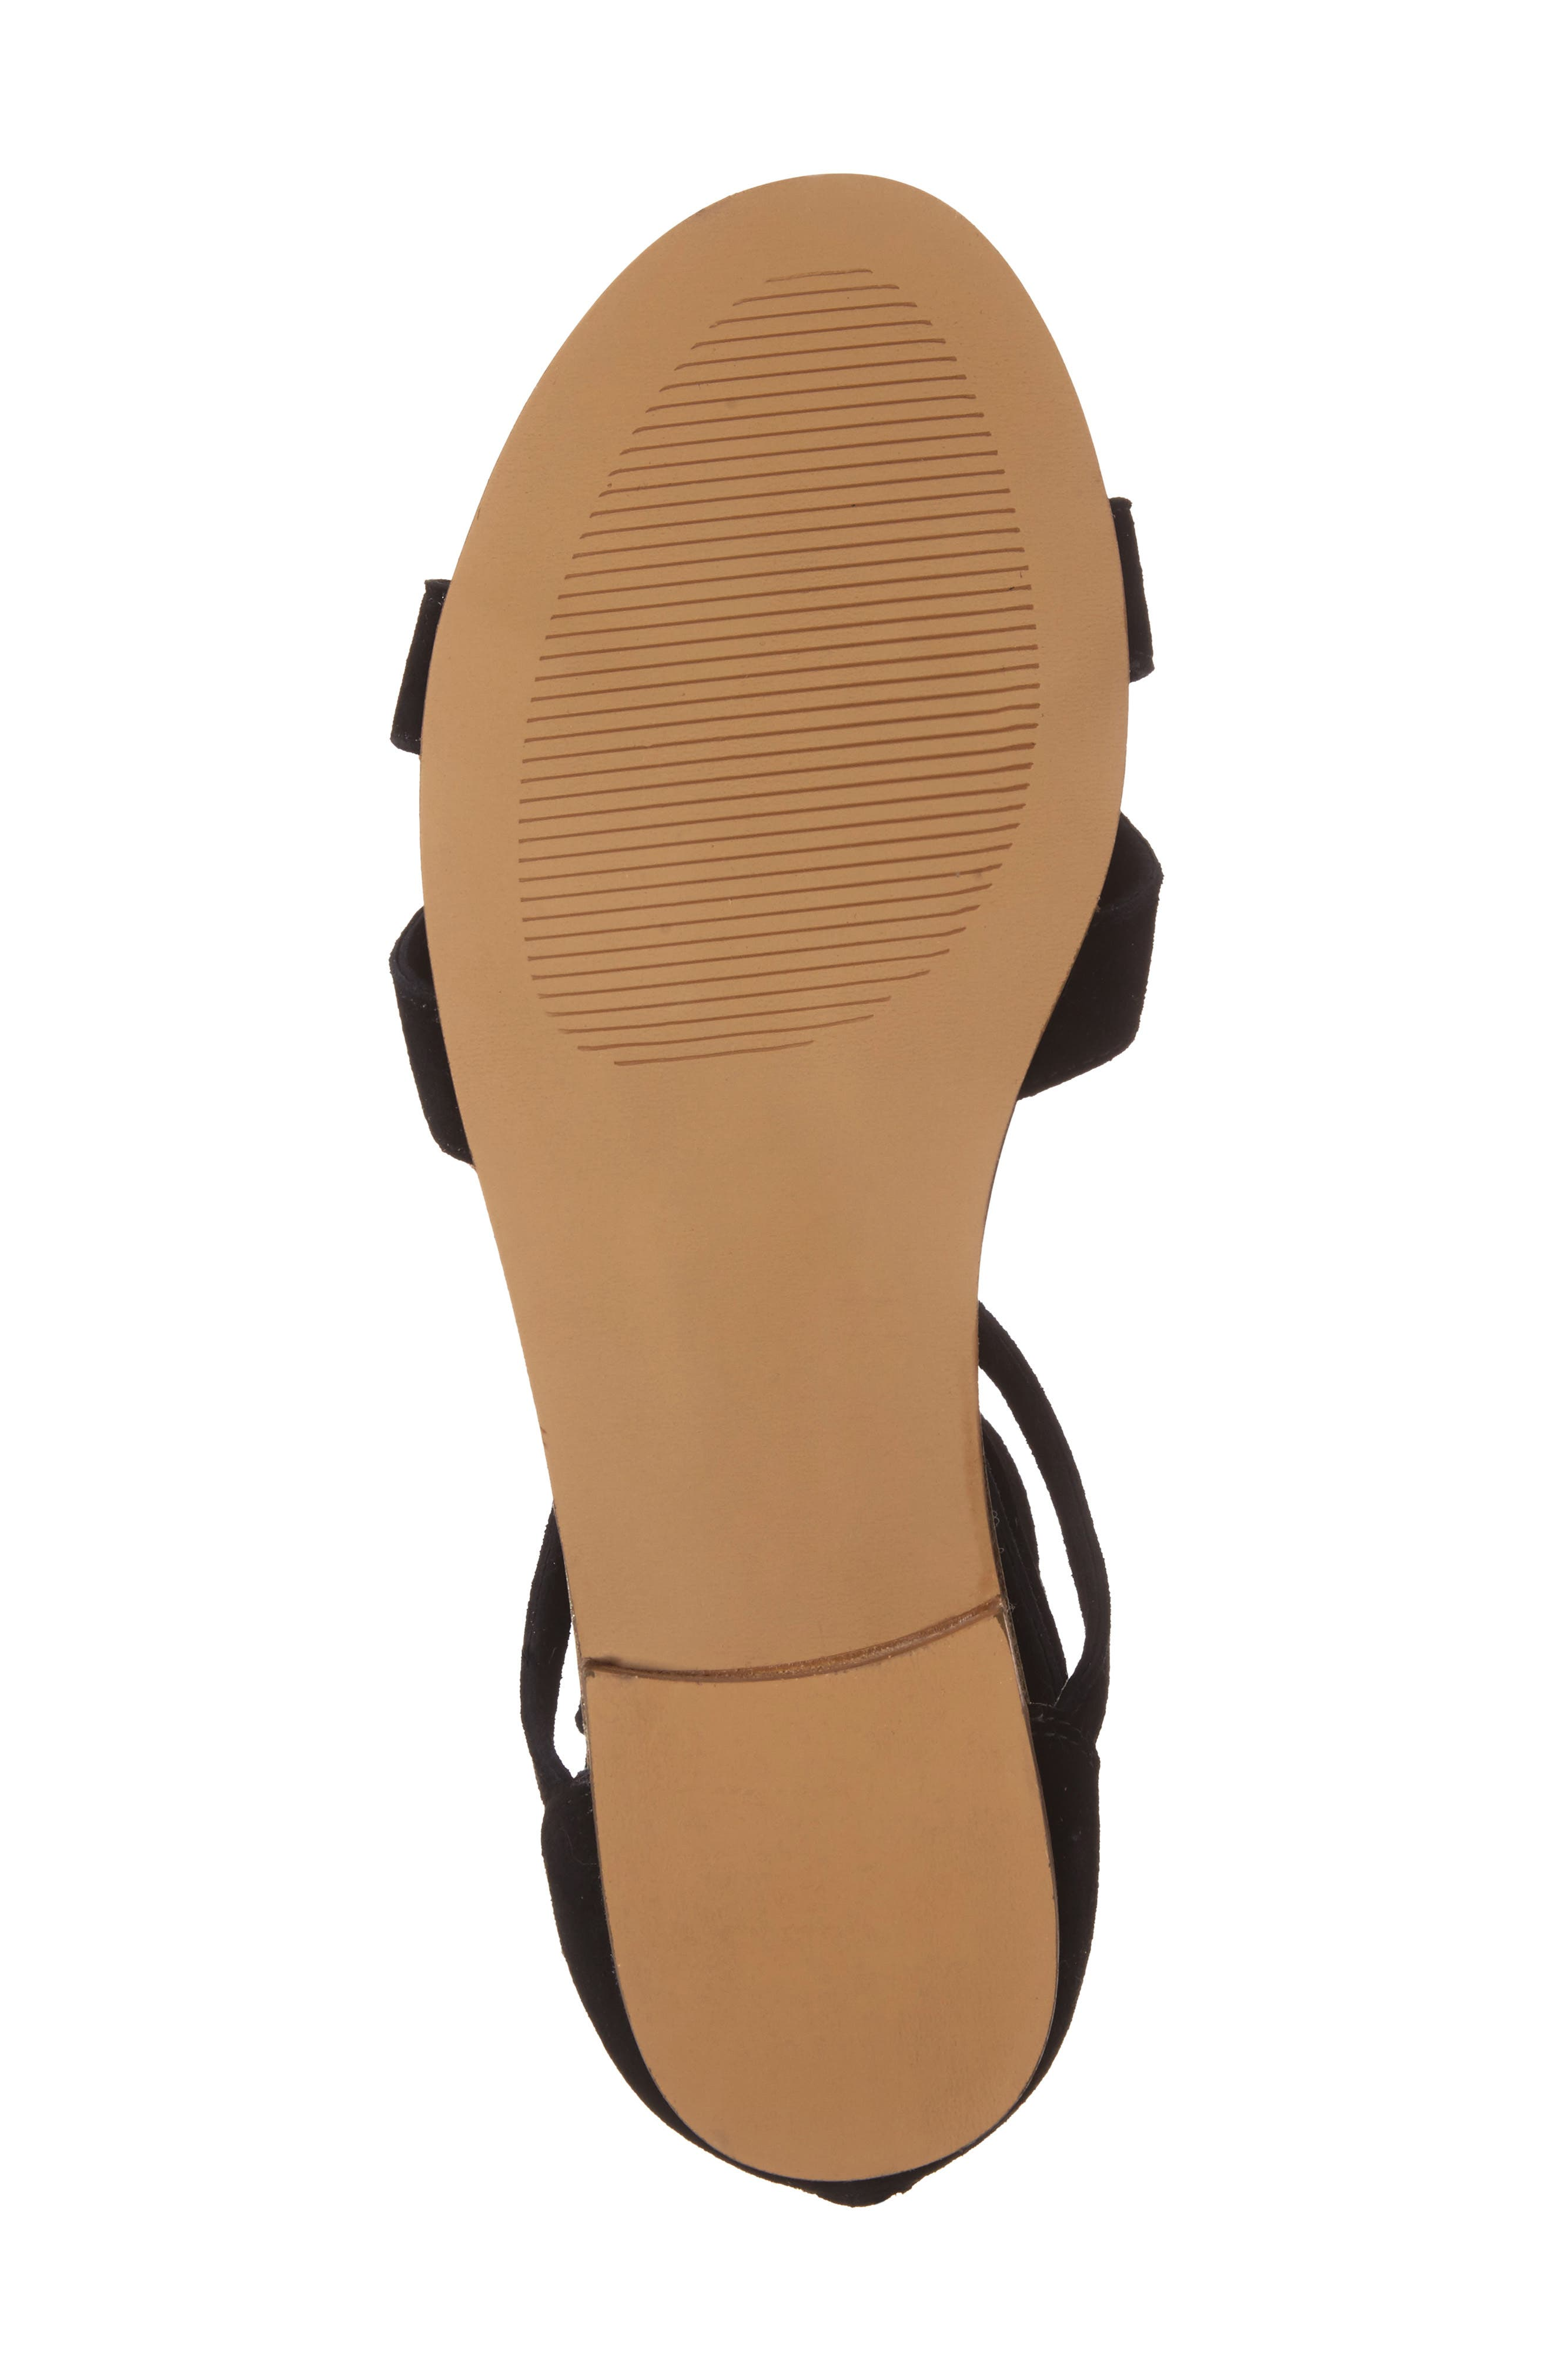 Sana Wraparound Sandal,                             Alternate thumbnail 5, color,                             003